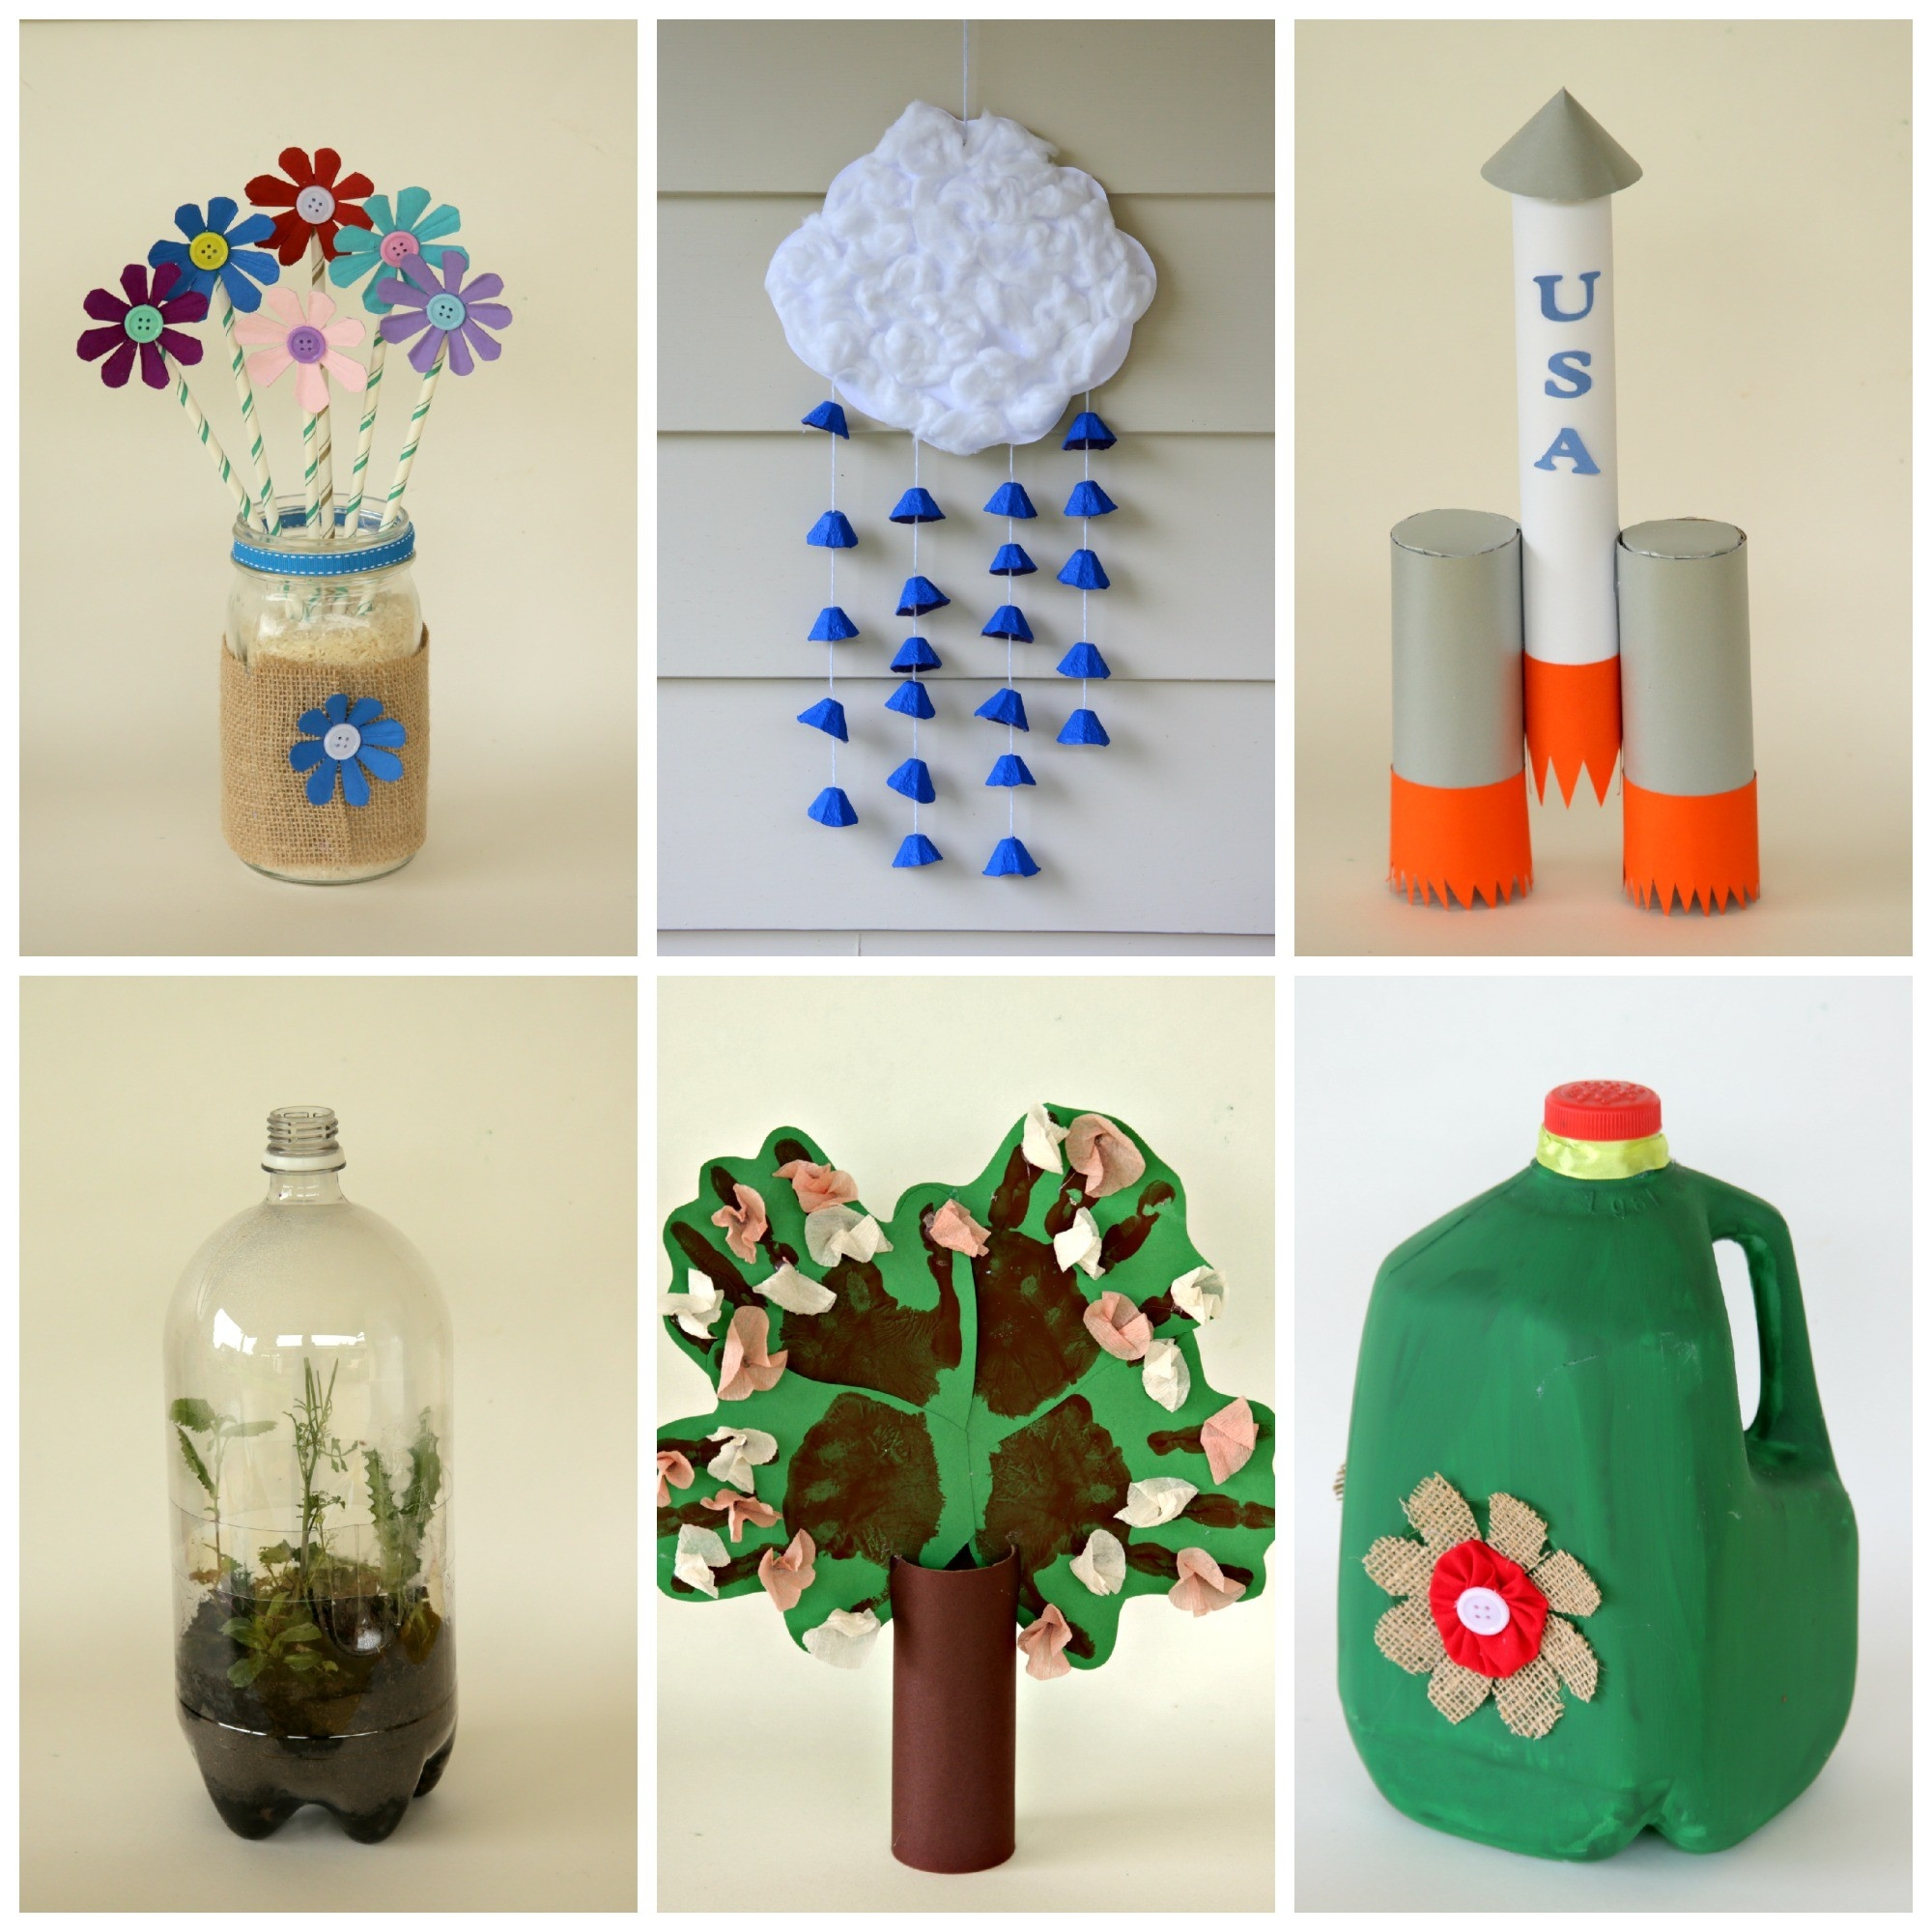 6 Earth Day Crafts From Recycled Materials · Kix Cereal intended for Crafts For Kids With Recycled Materials 27049